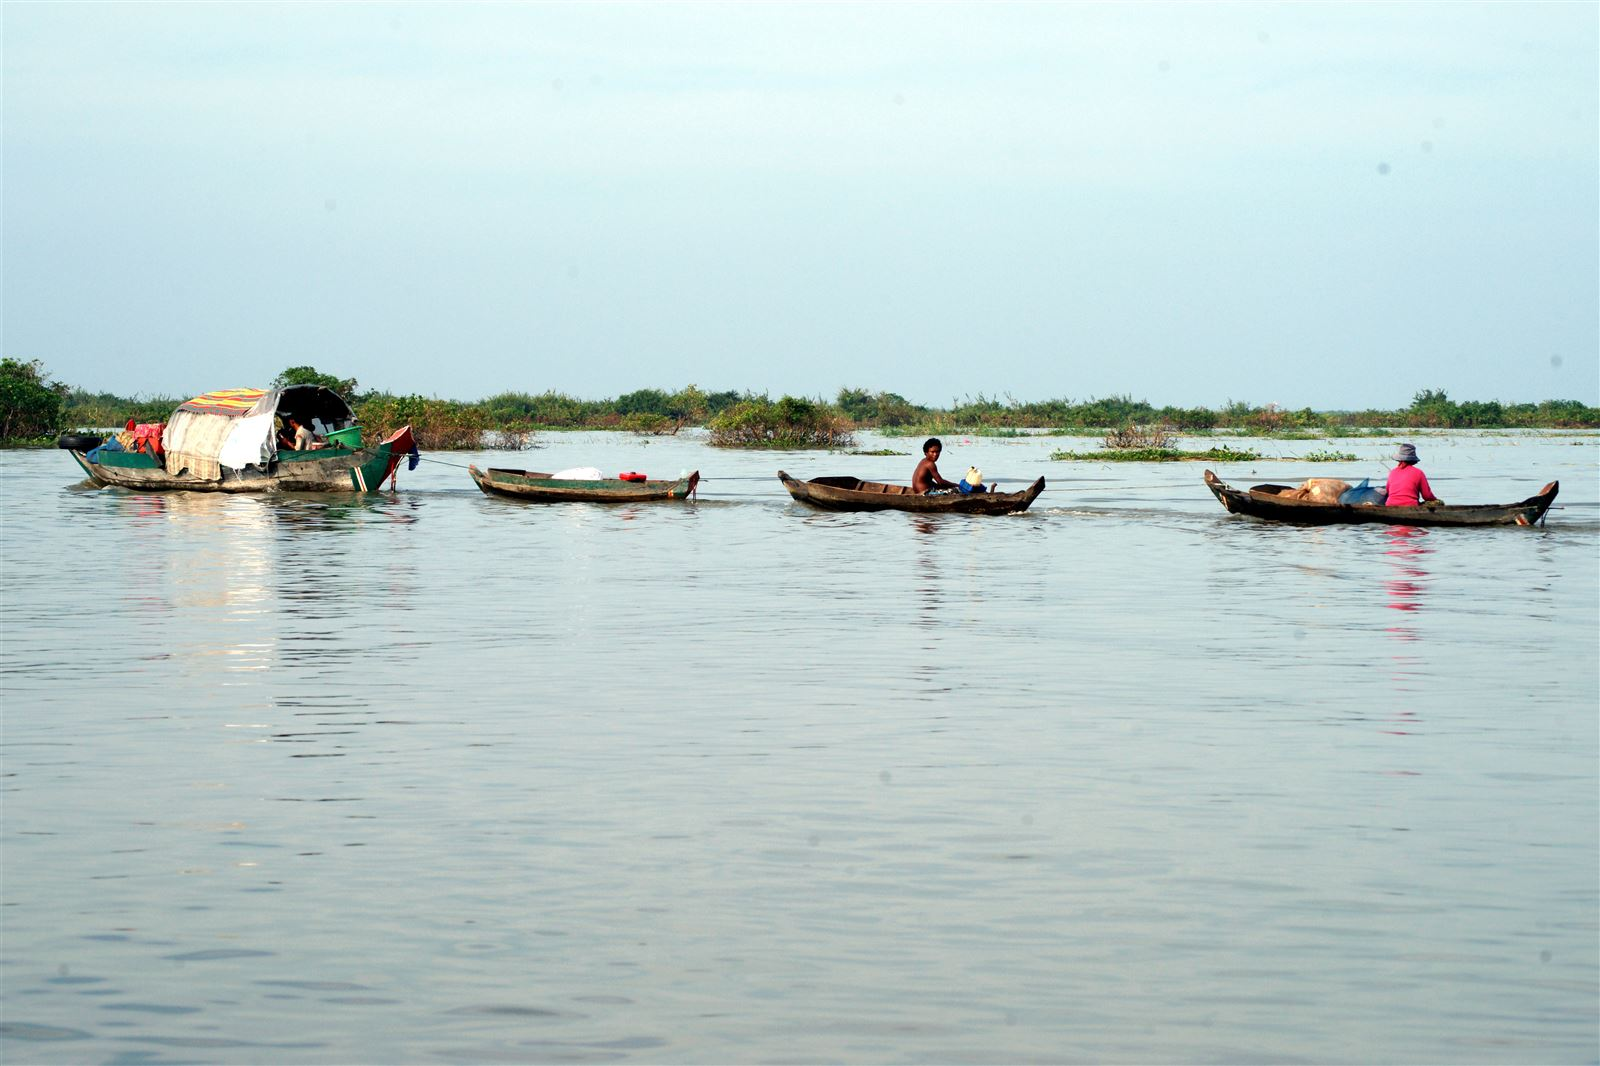 A travers le lac Tonle Sap